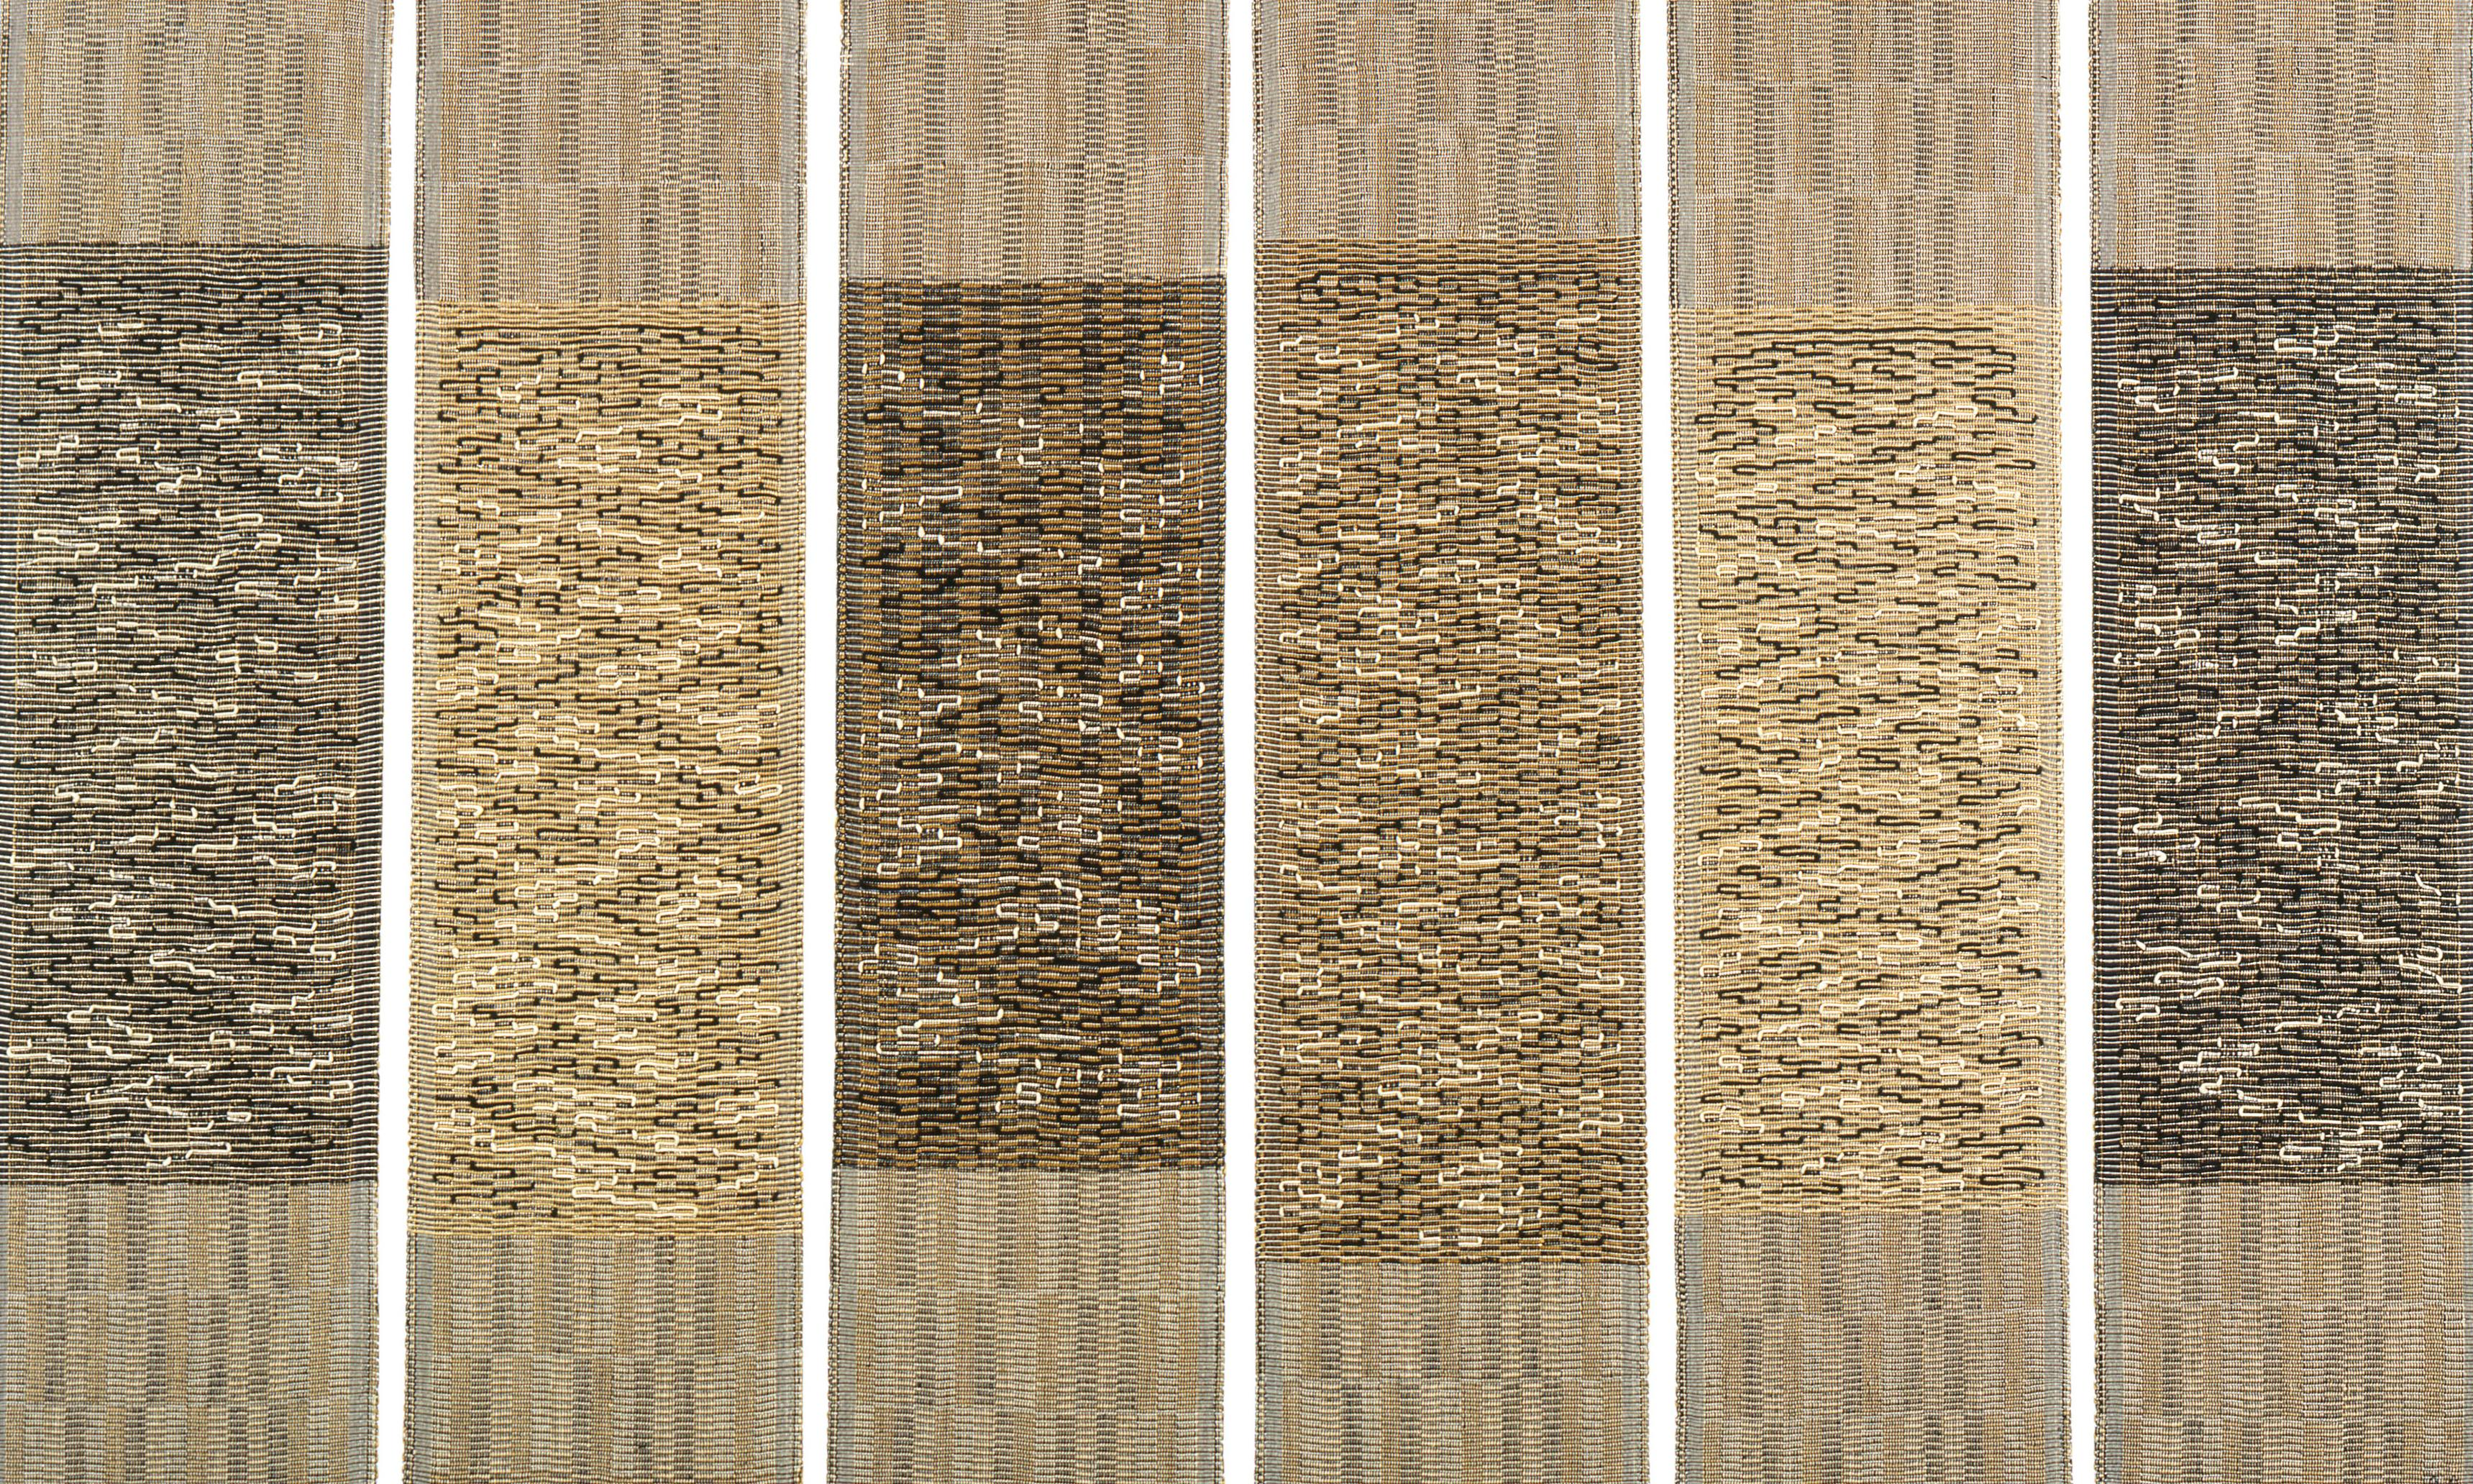 Peter Chappell on Anni Albers at the Tate Modern